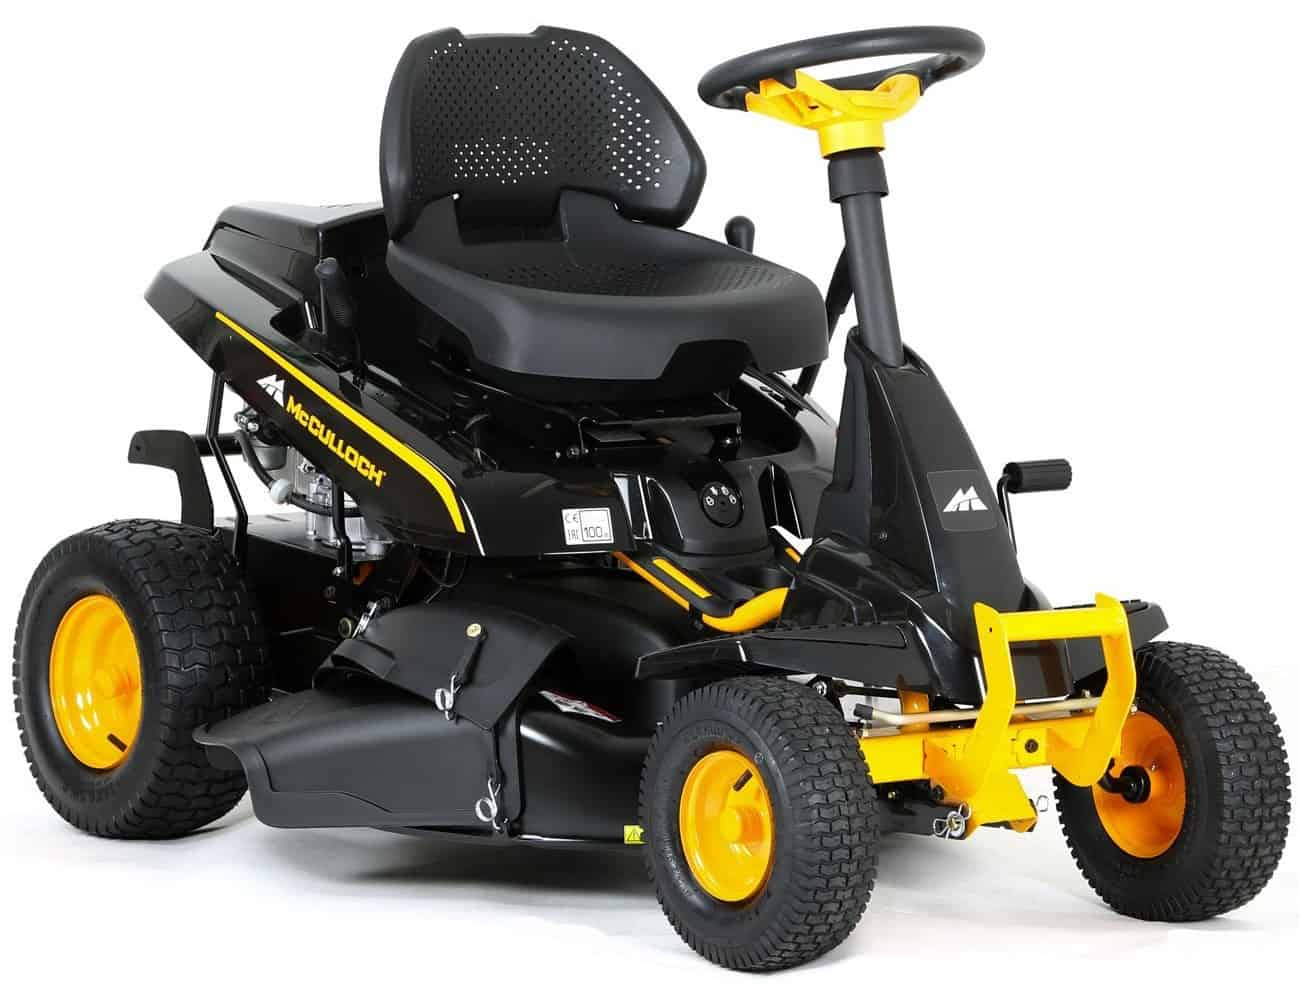 Best Ride-On Mower for Large Garden – McCulloch M 105 77X